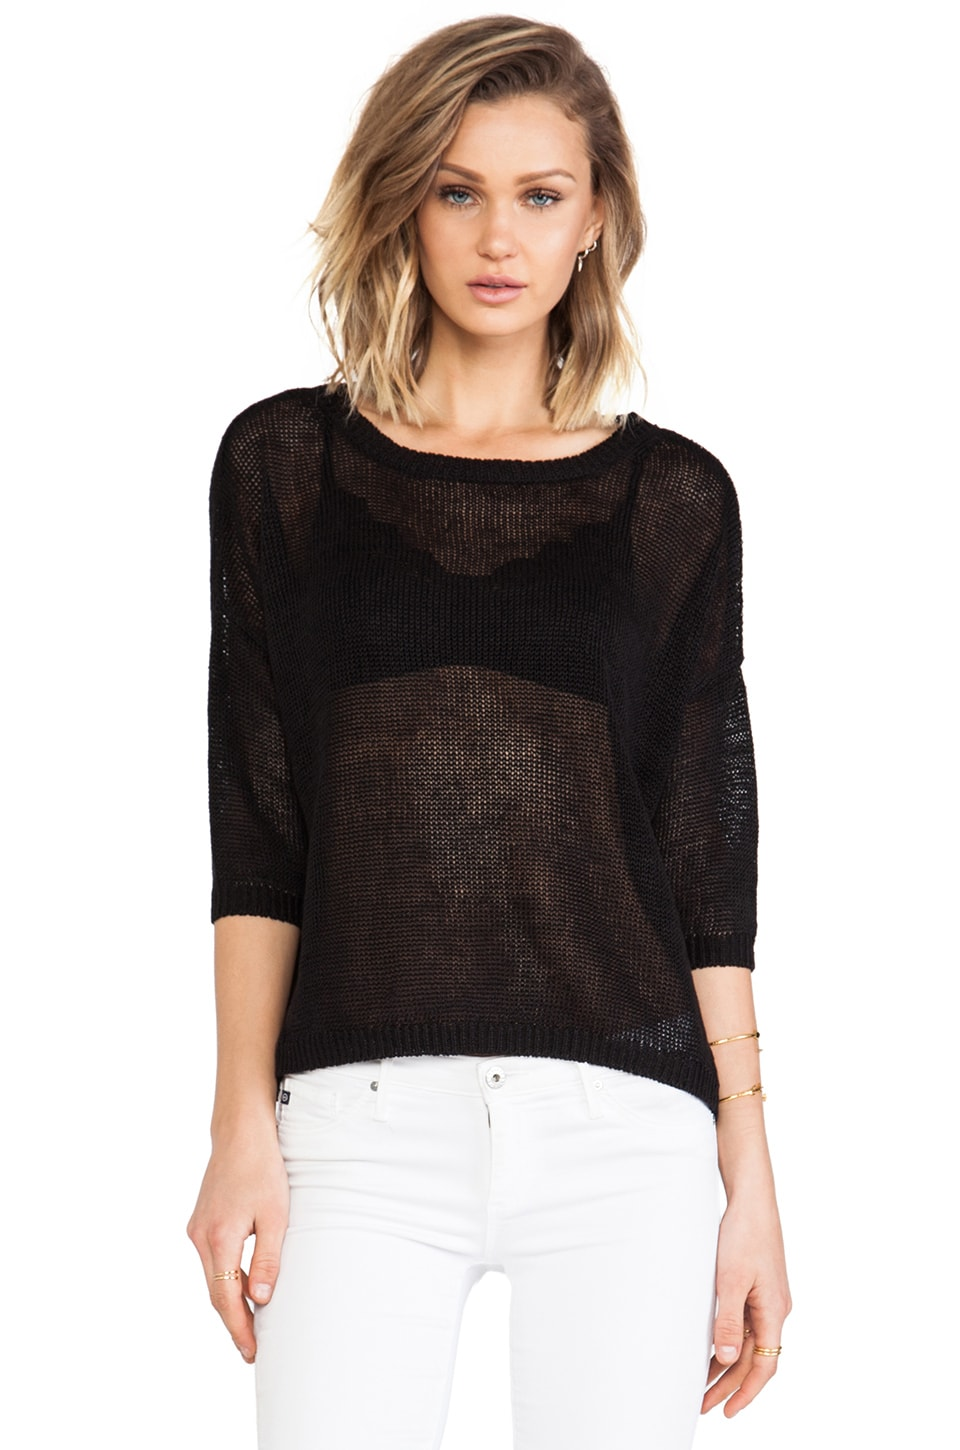 DemyLee x REVOLVE Alexa Short Sleeve Sweater in Black